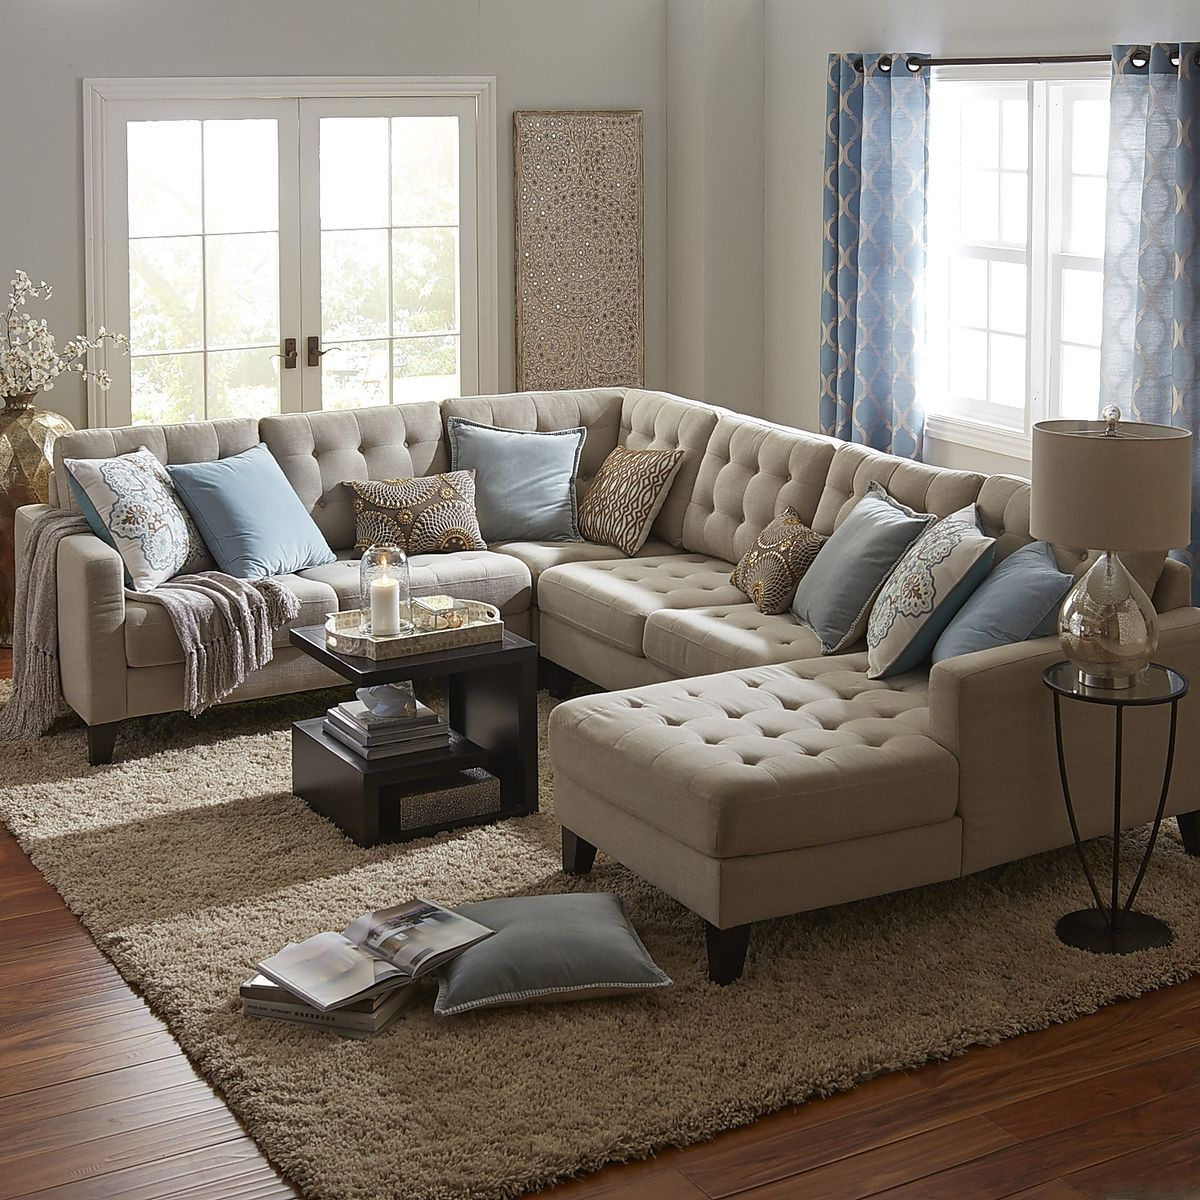 build your own nyle stone gray sectional collection apartments rh pinterest com